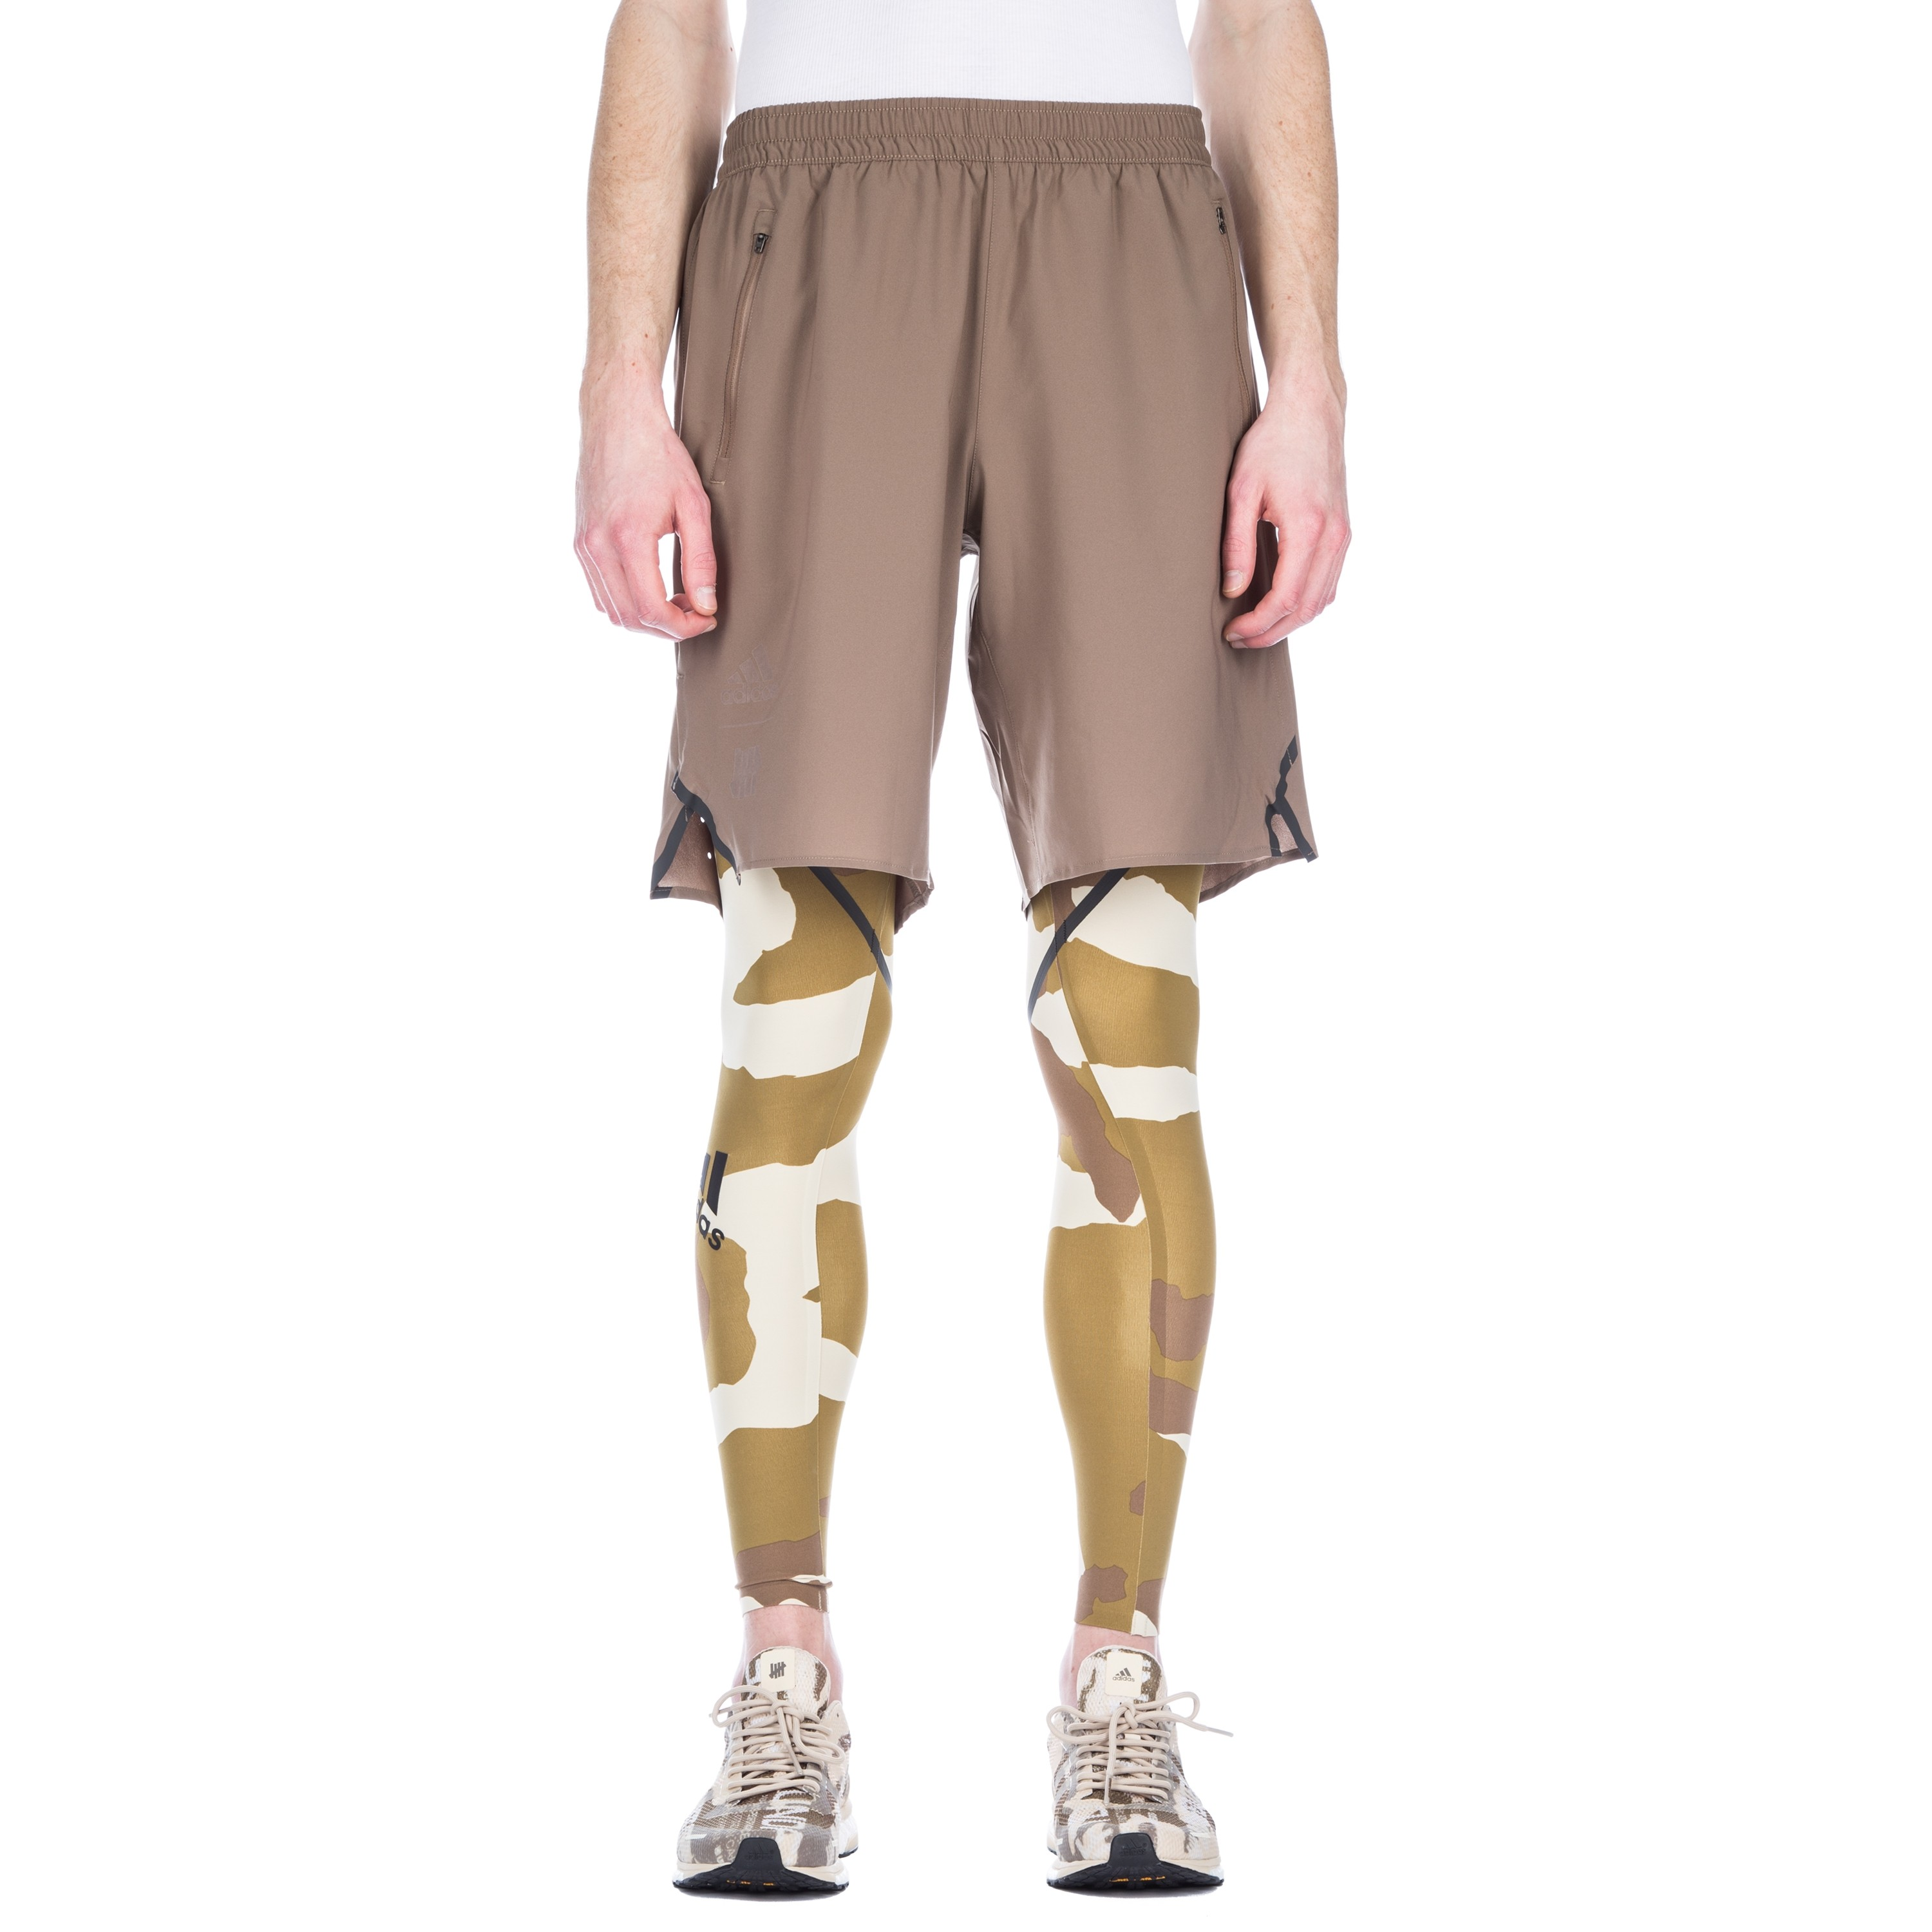 4b5055dadf2a74 adidas by UNDEFEATED Alphaskin 360 Running Tights (Camo) - Consortium